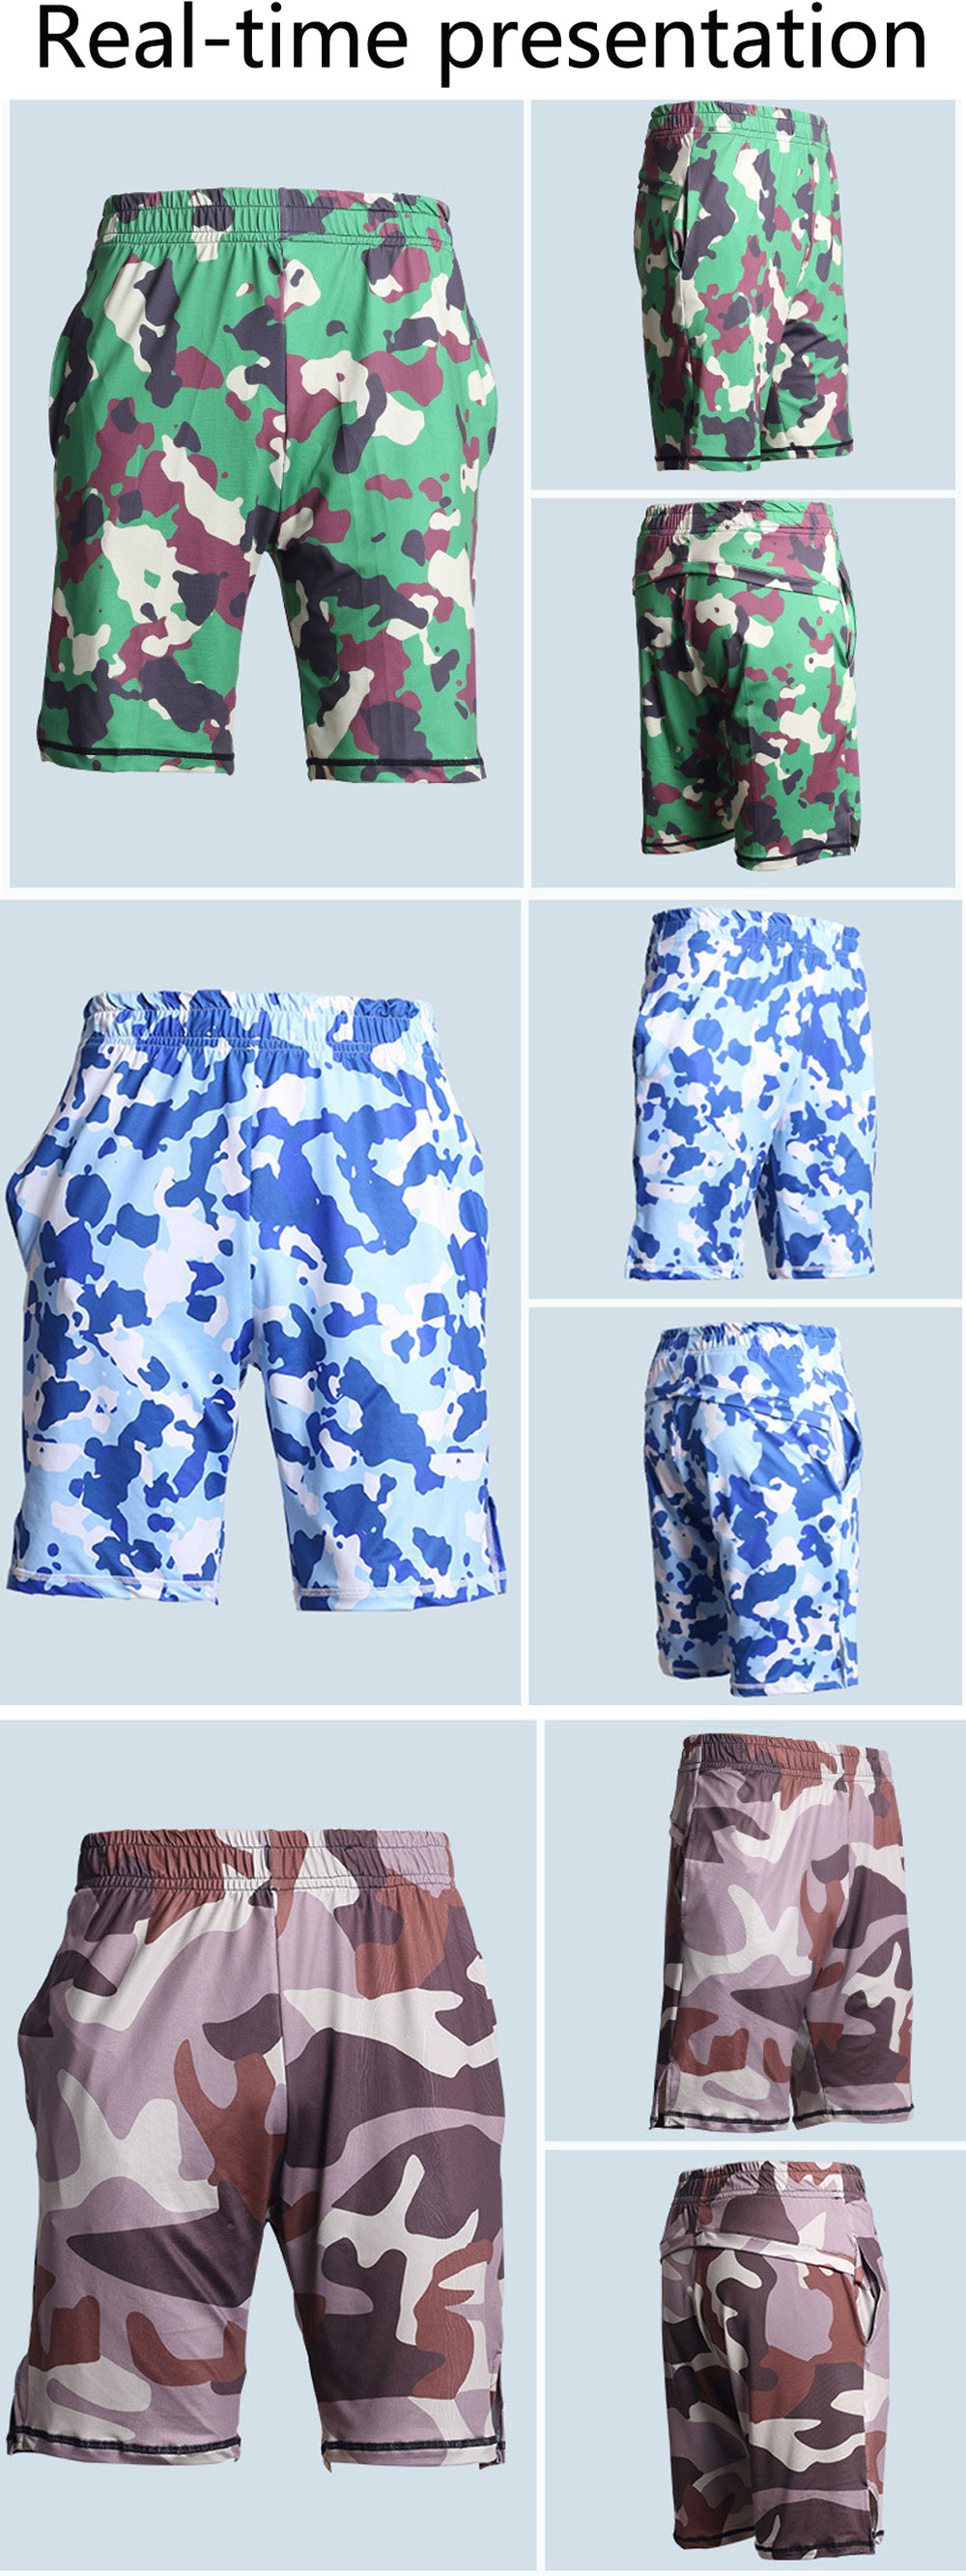 Men's Summer Outdoor Beach Camouflage Suit Breathable Dry Exercise Shorts